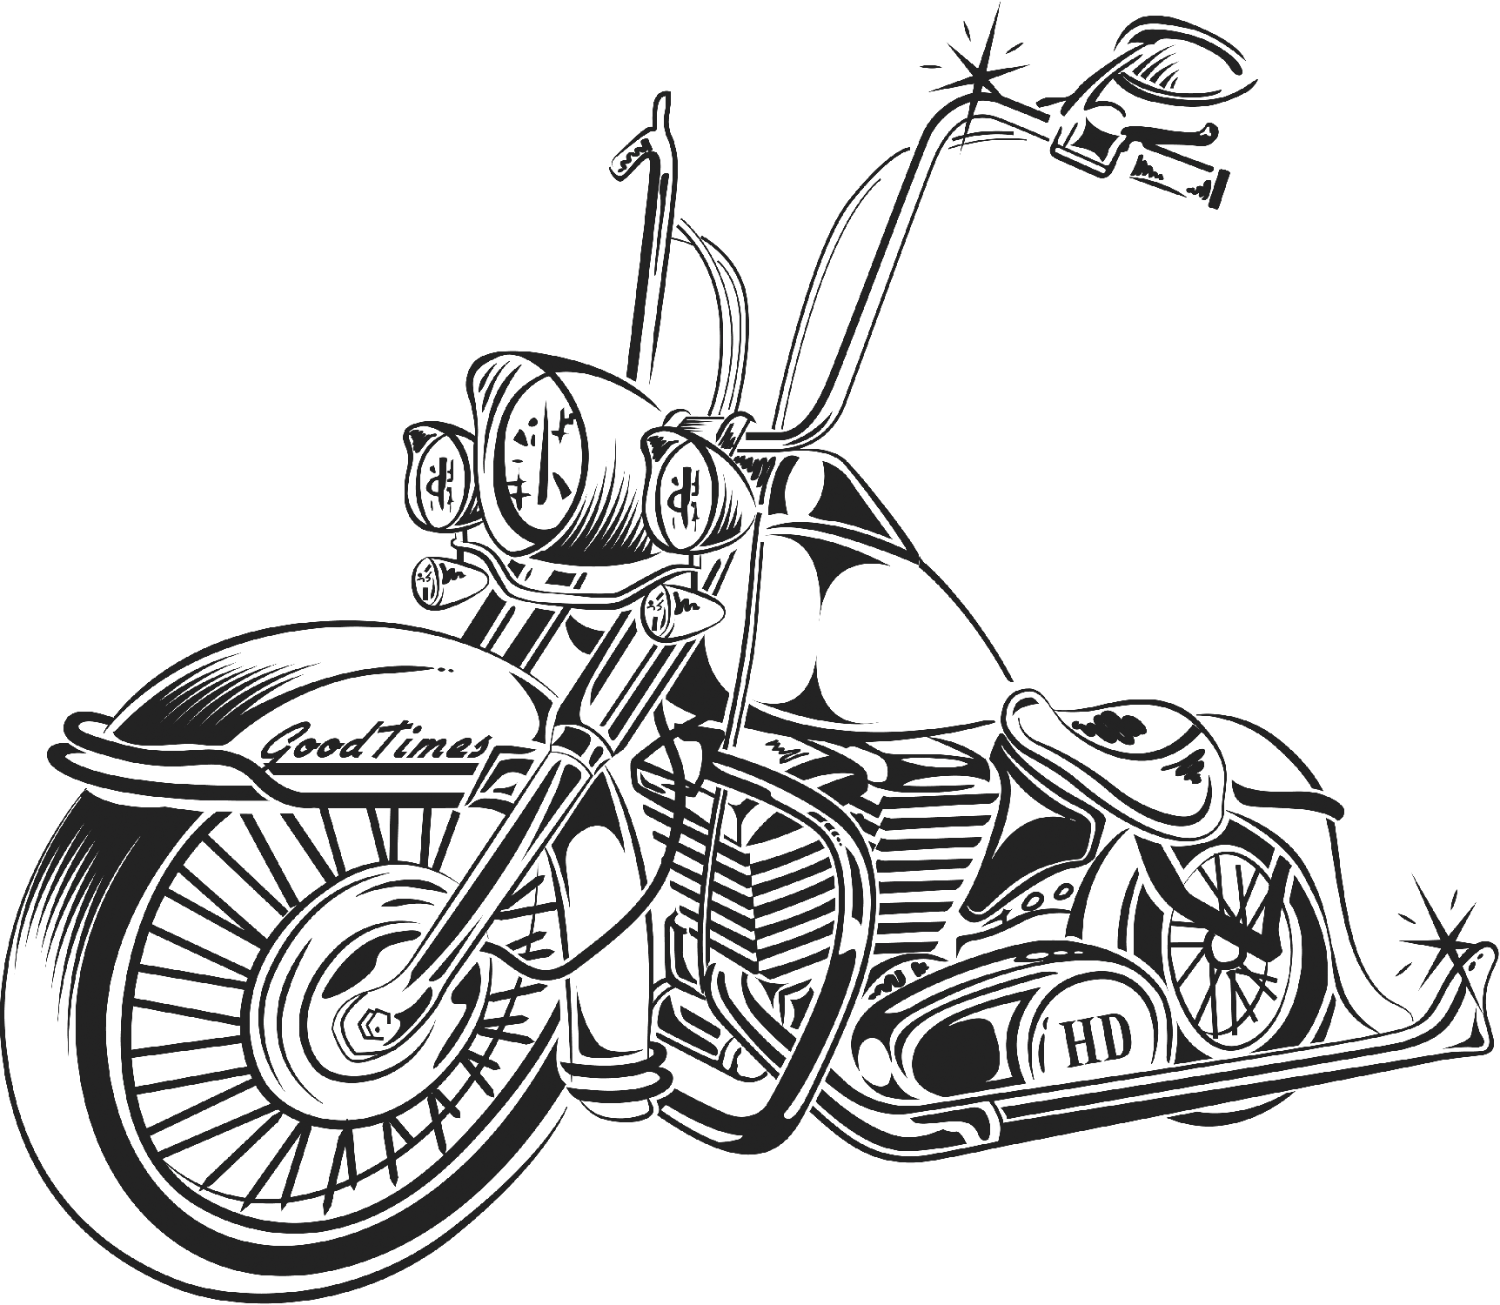 chopper drawing motorcycle chopper drawing at paintingvalleycom explore chopper drawing